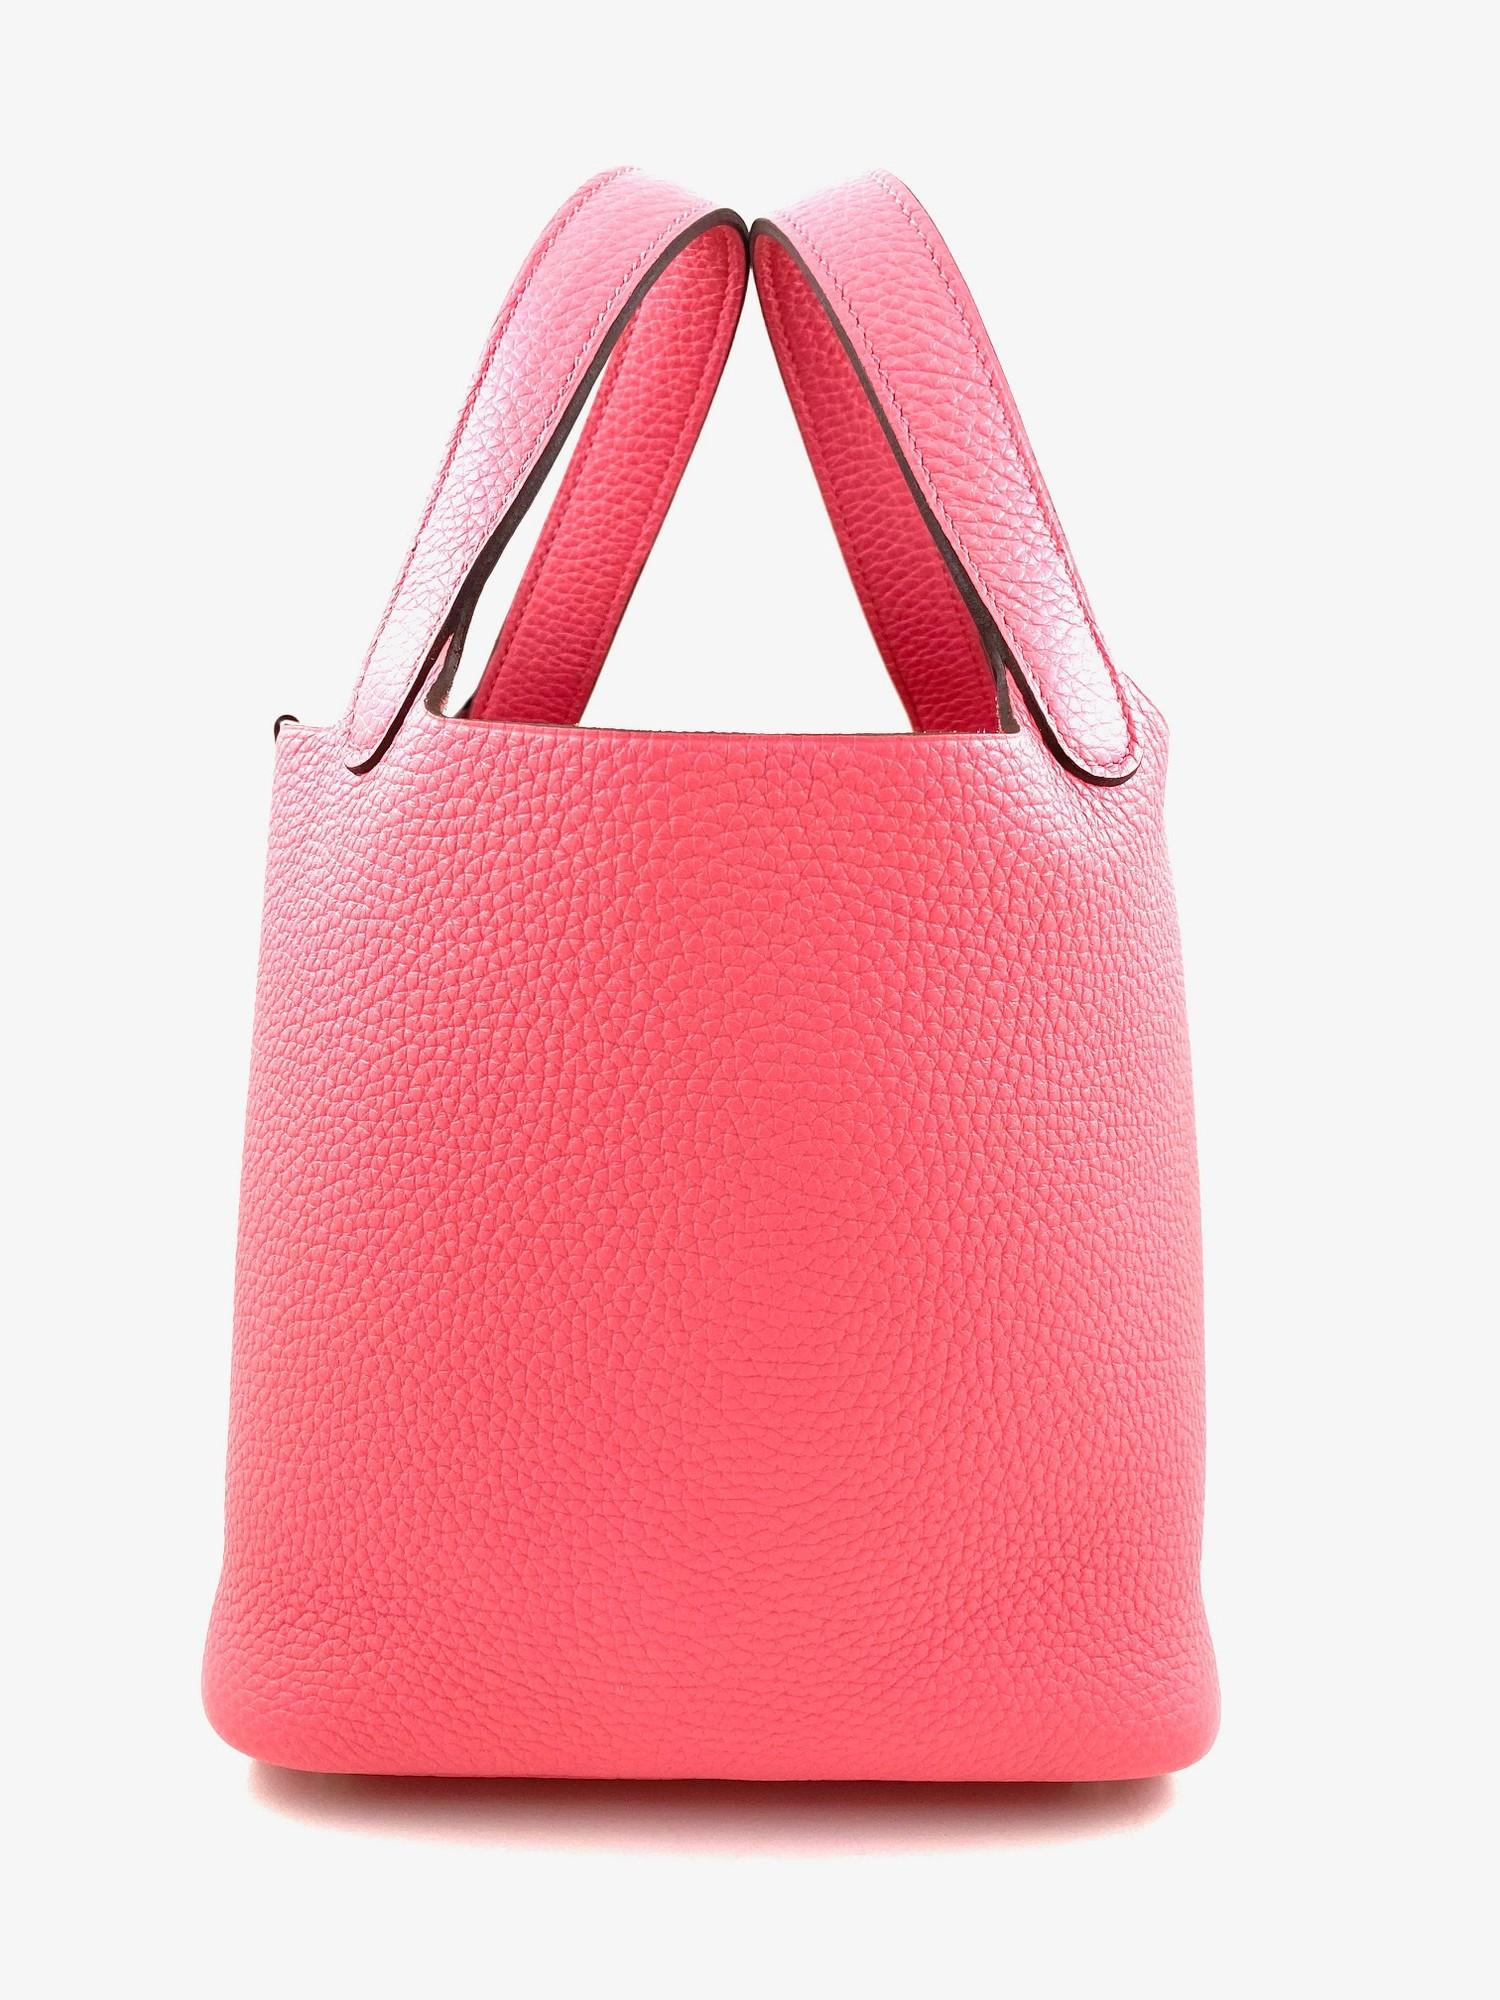 A Rose Azalee Hermes Picotin 18cm in clemence leather with palladium hardware. Includes Box, Dustbag